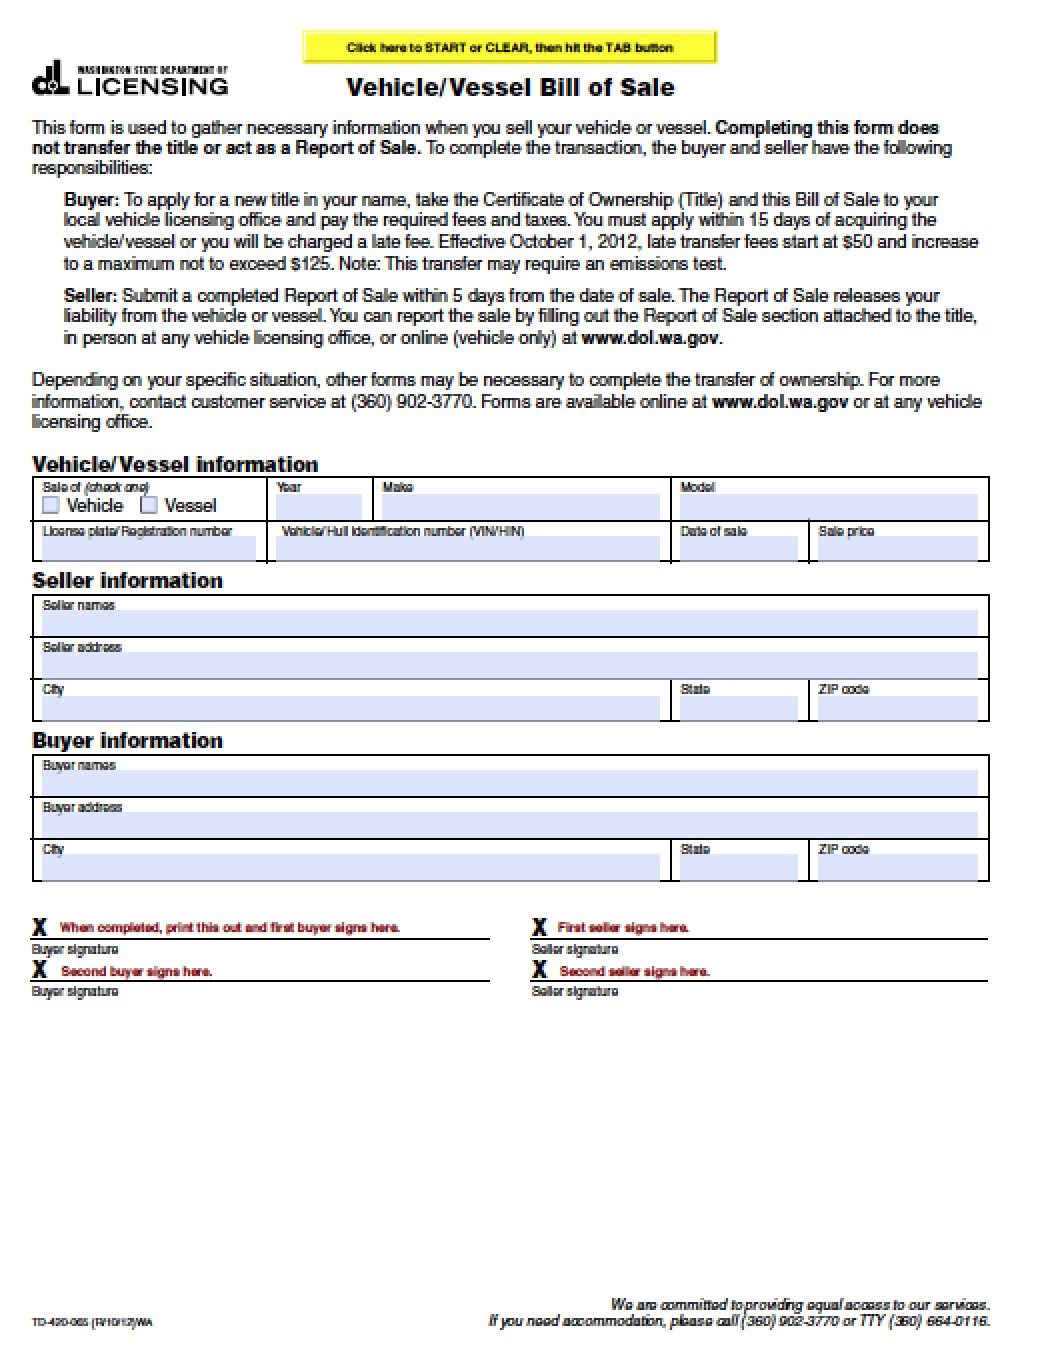 vehicle bill of sale wa Free Washington Vehicle/Vessel Bill of Sale Form | PDF | Word (.doc)